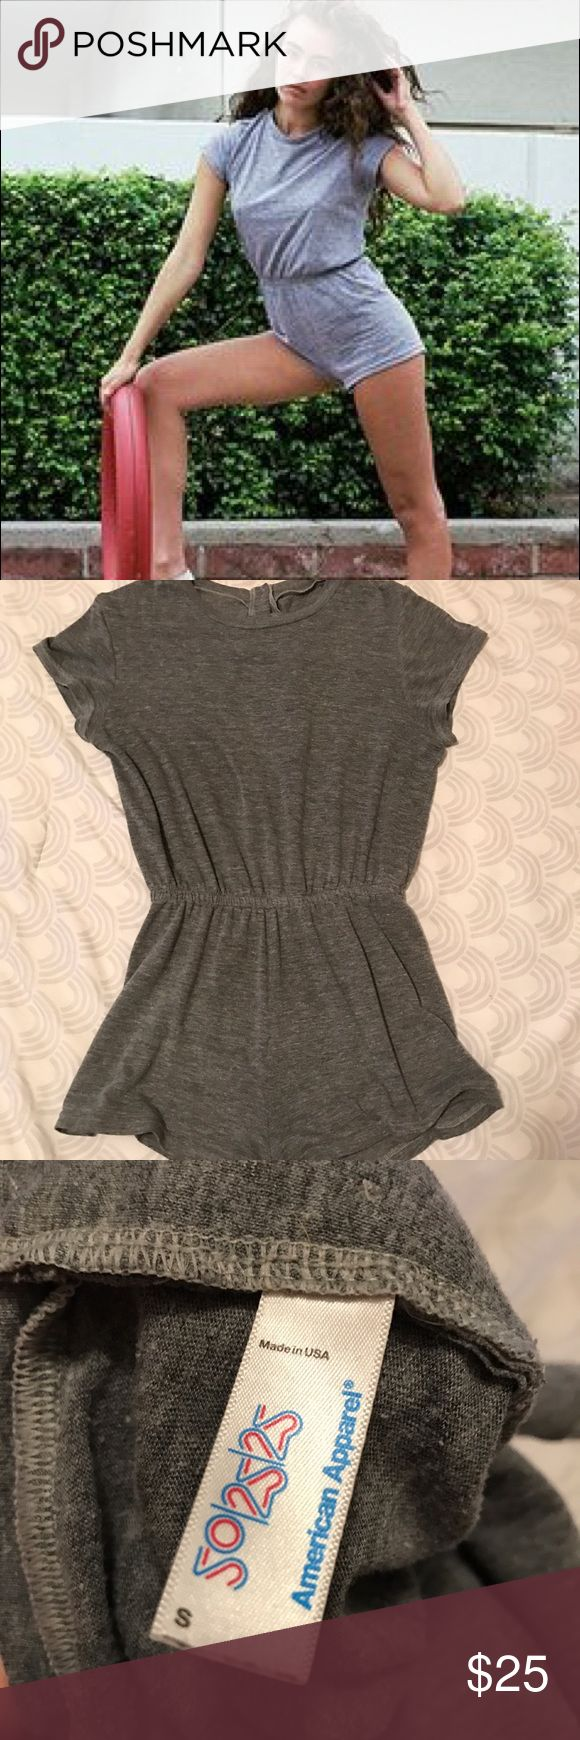 American Apparel tshirt romper Super soft and comfy AA t shirt romper. Well loved but still in excellent condition. Absolute staple for summer! American Apparel Shorts